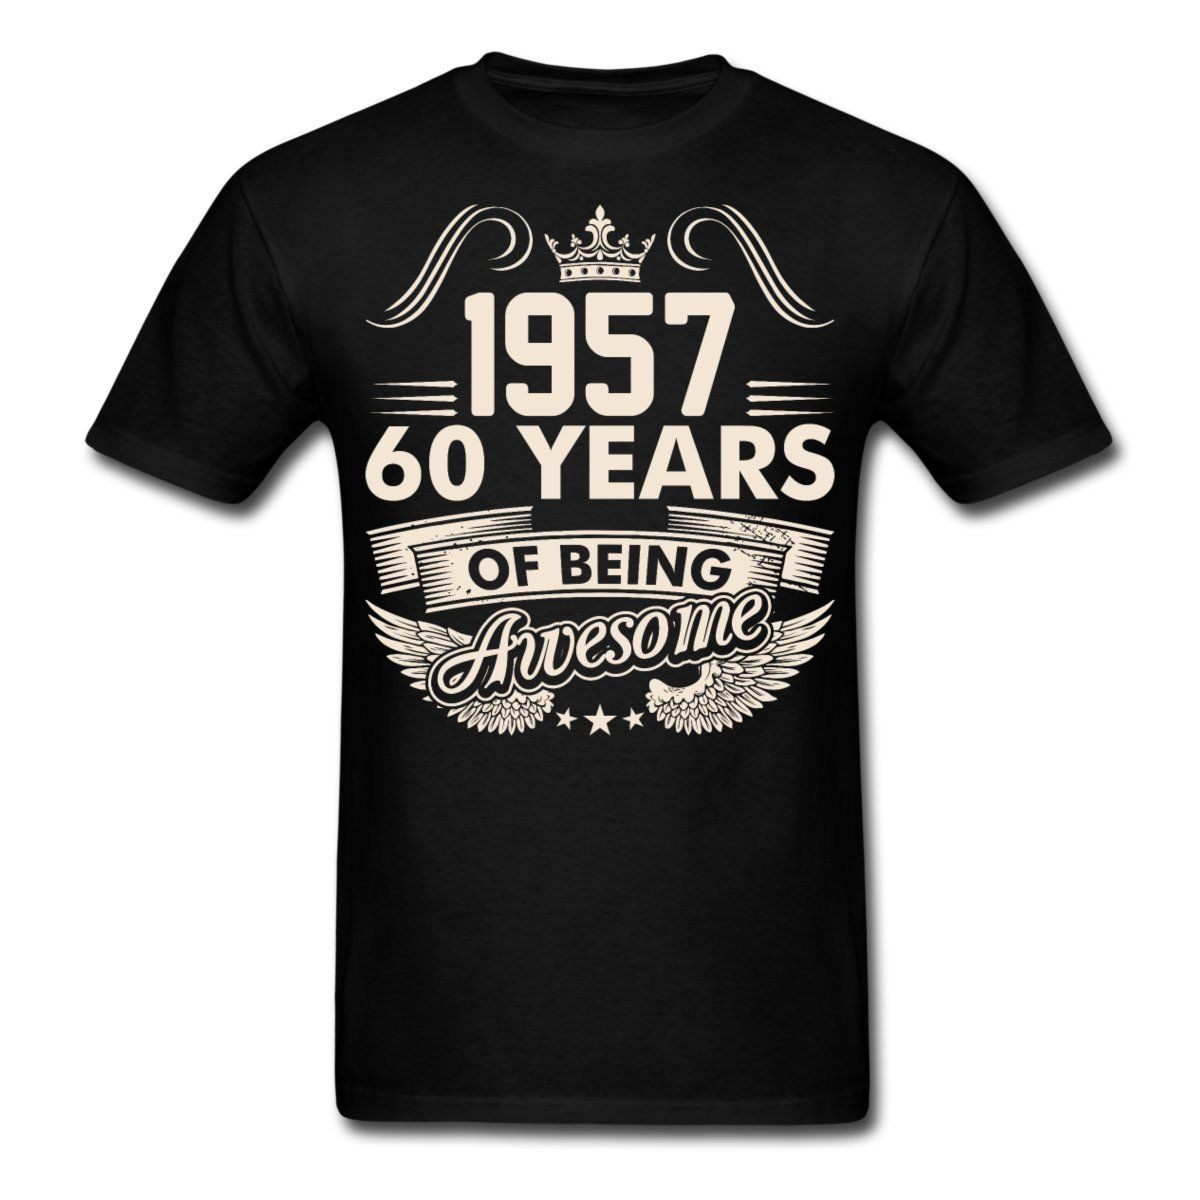 Design t shirt for cheap - Aliexpress Com Buy Cheap T Shirt Design Men S Crew Neck Birthday 60 Years Awesome Since 1957 Short Graphic Tees From Reliable Designer T Shirt Suppliers